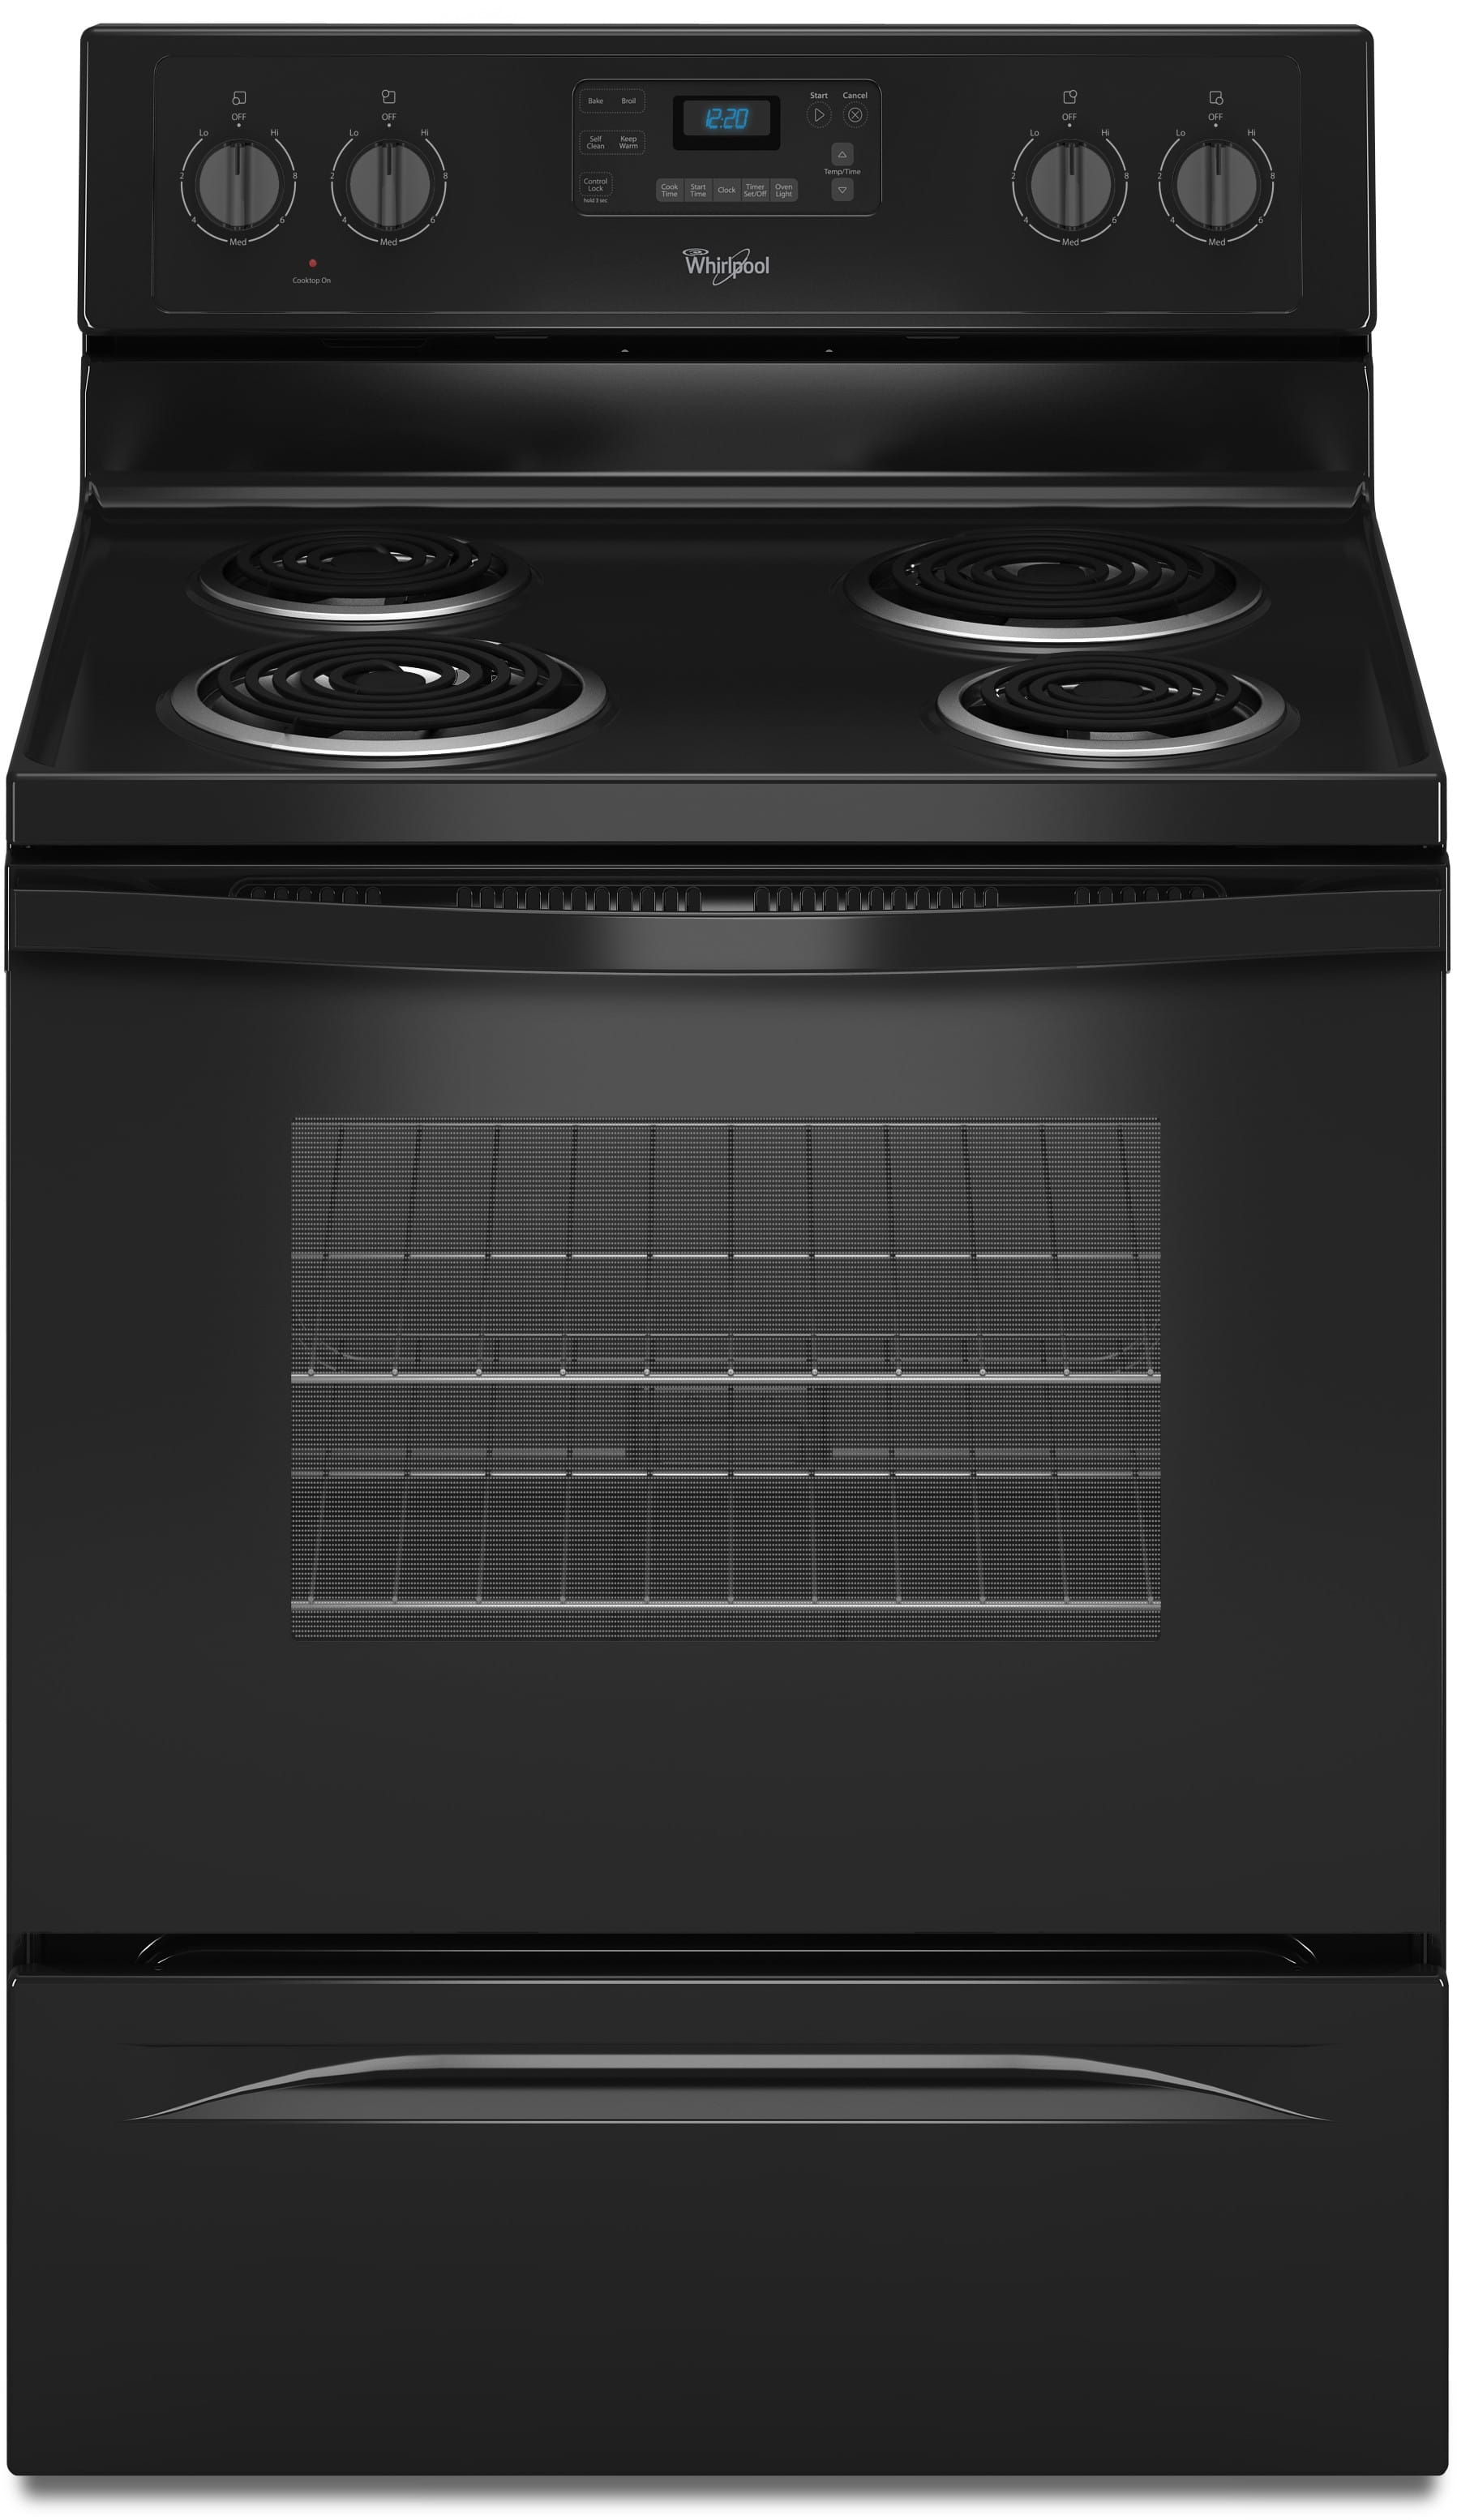 Whirlpool WFC310S0EB 30 Inch Freestanding Electric Range With 4 Coil  Elements, 2,600 Watts, 4.8 Cu. Ft. Traditional Oven, Self Cleaning System  And AccuBake ...